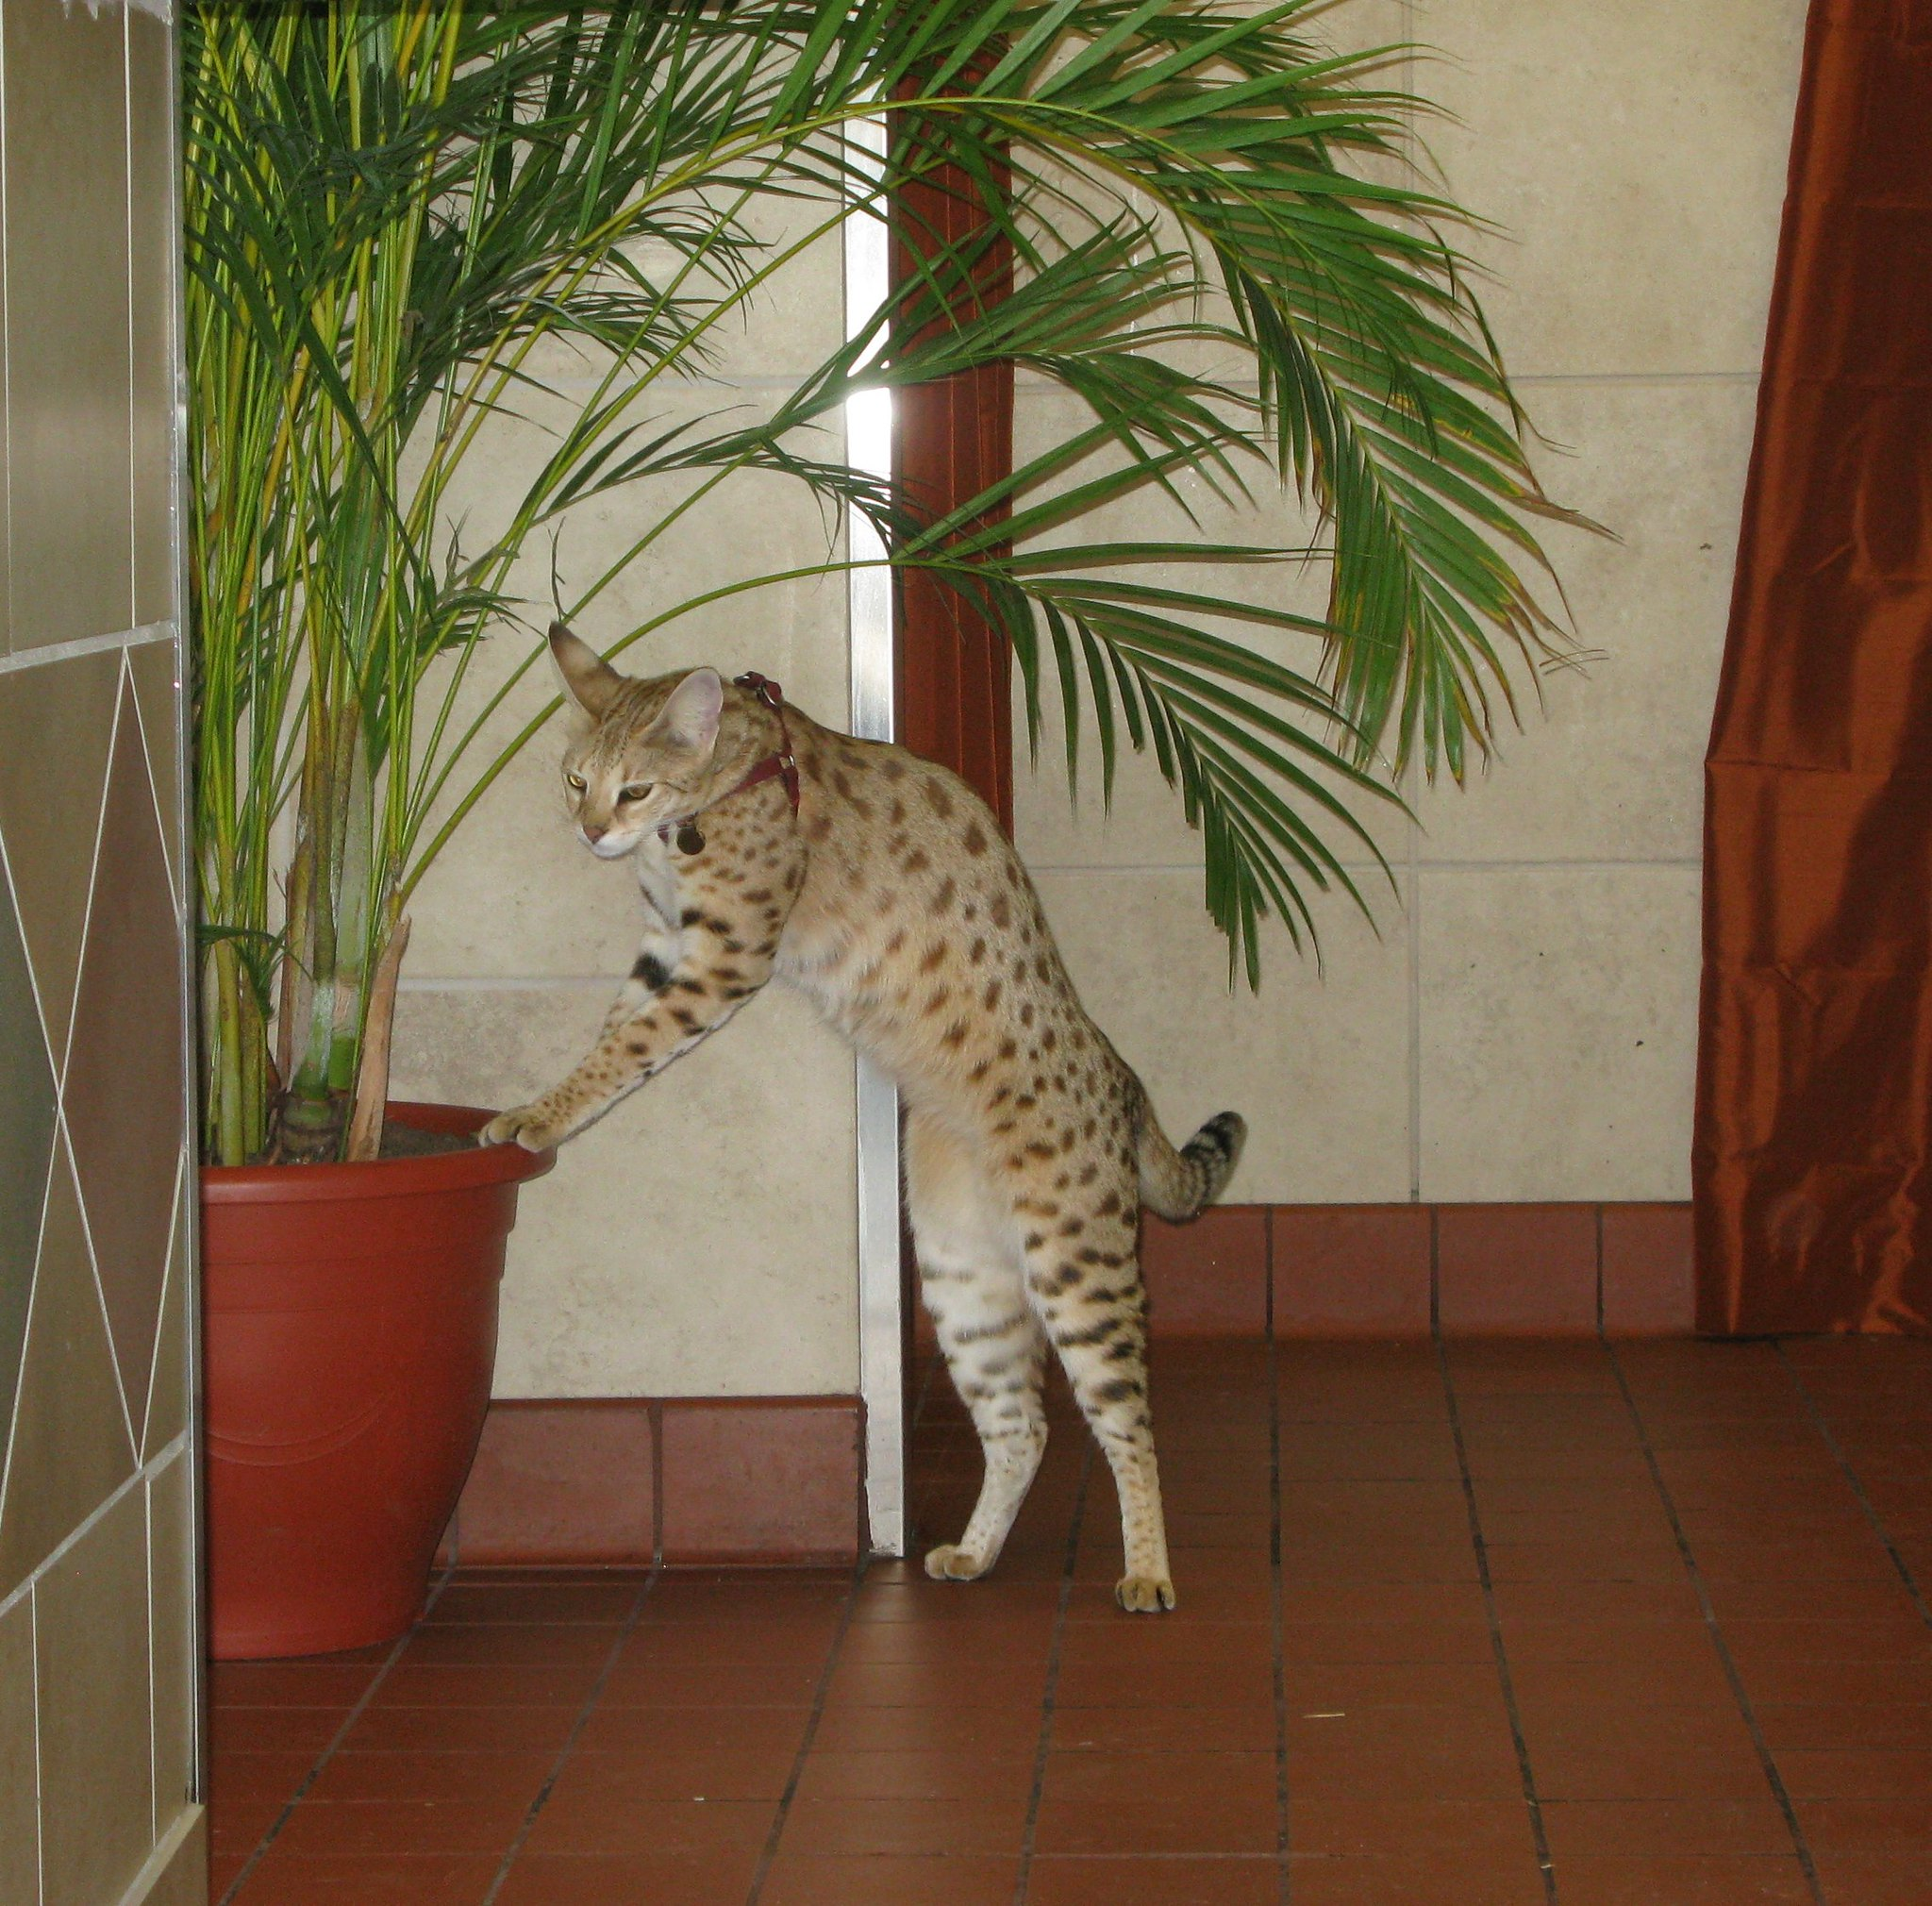 Savannah cat playing with flower pot